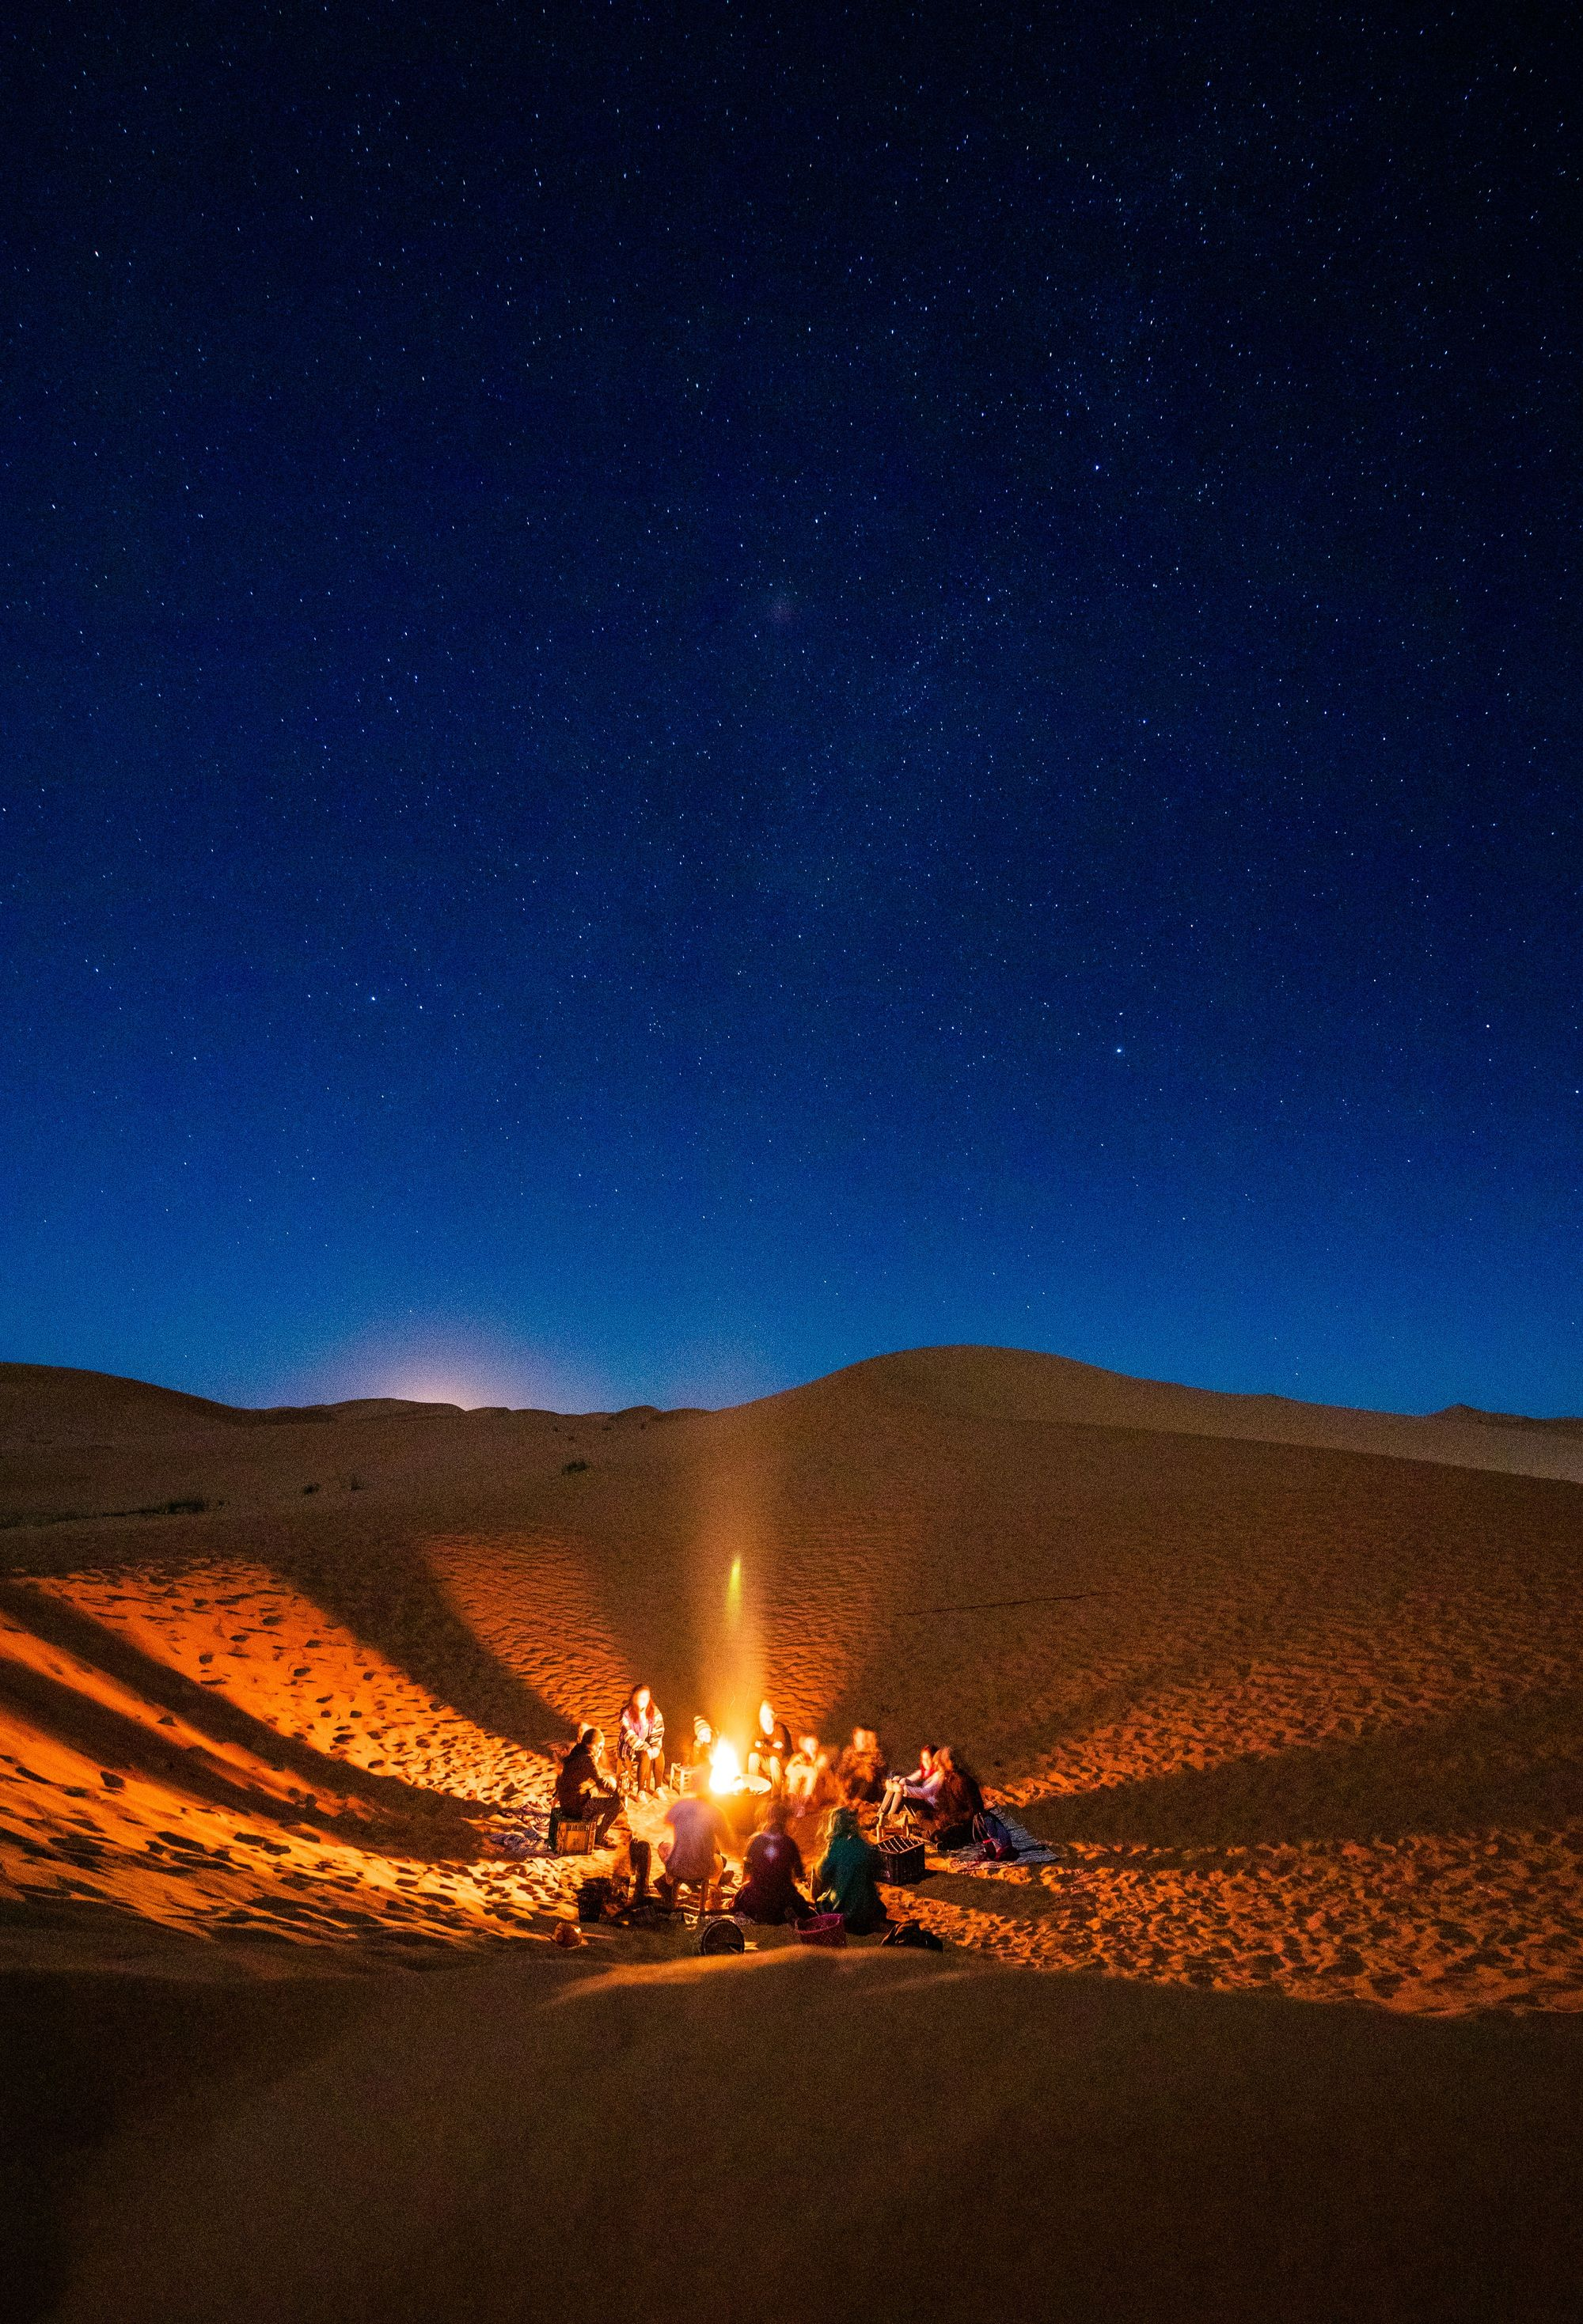 Enjoy the desert campfires at night